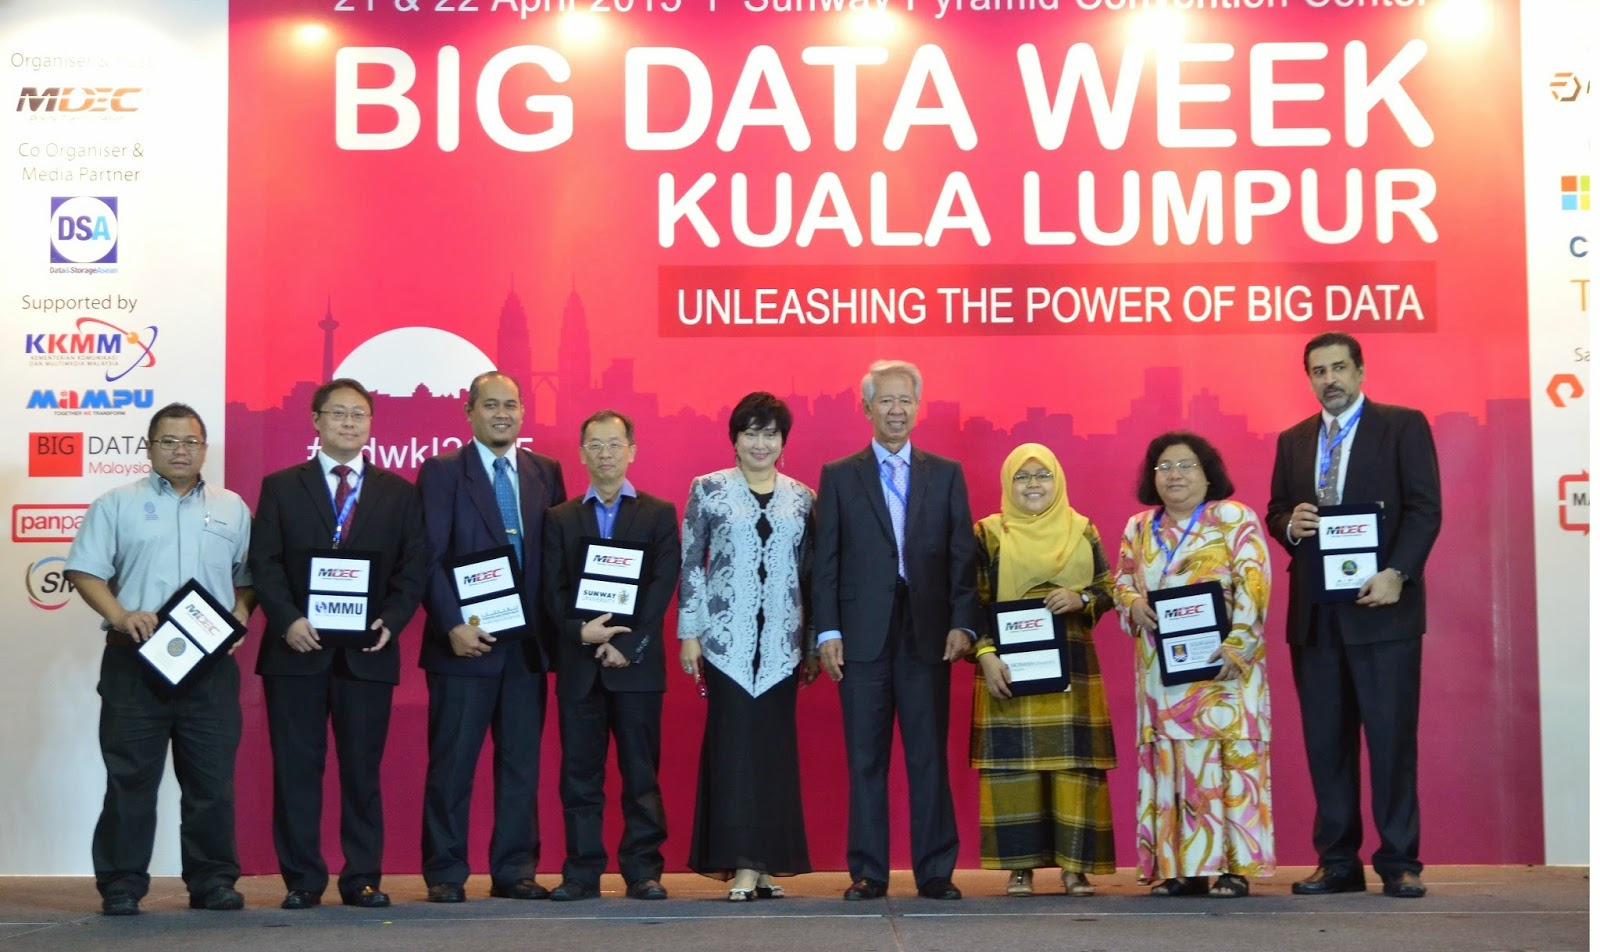 Big Data Week KL